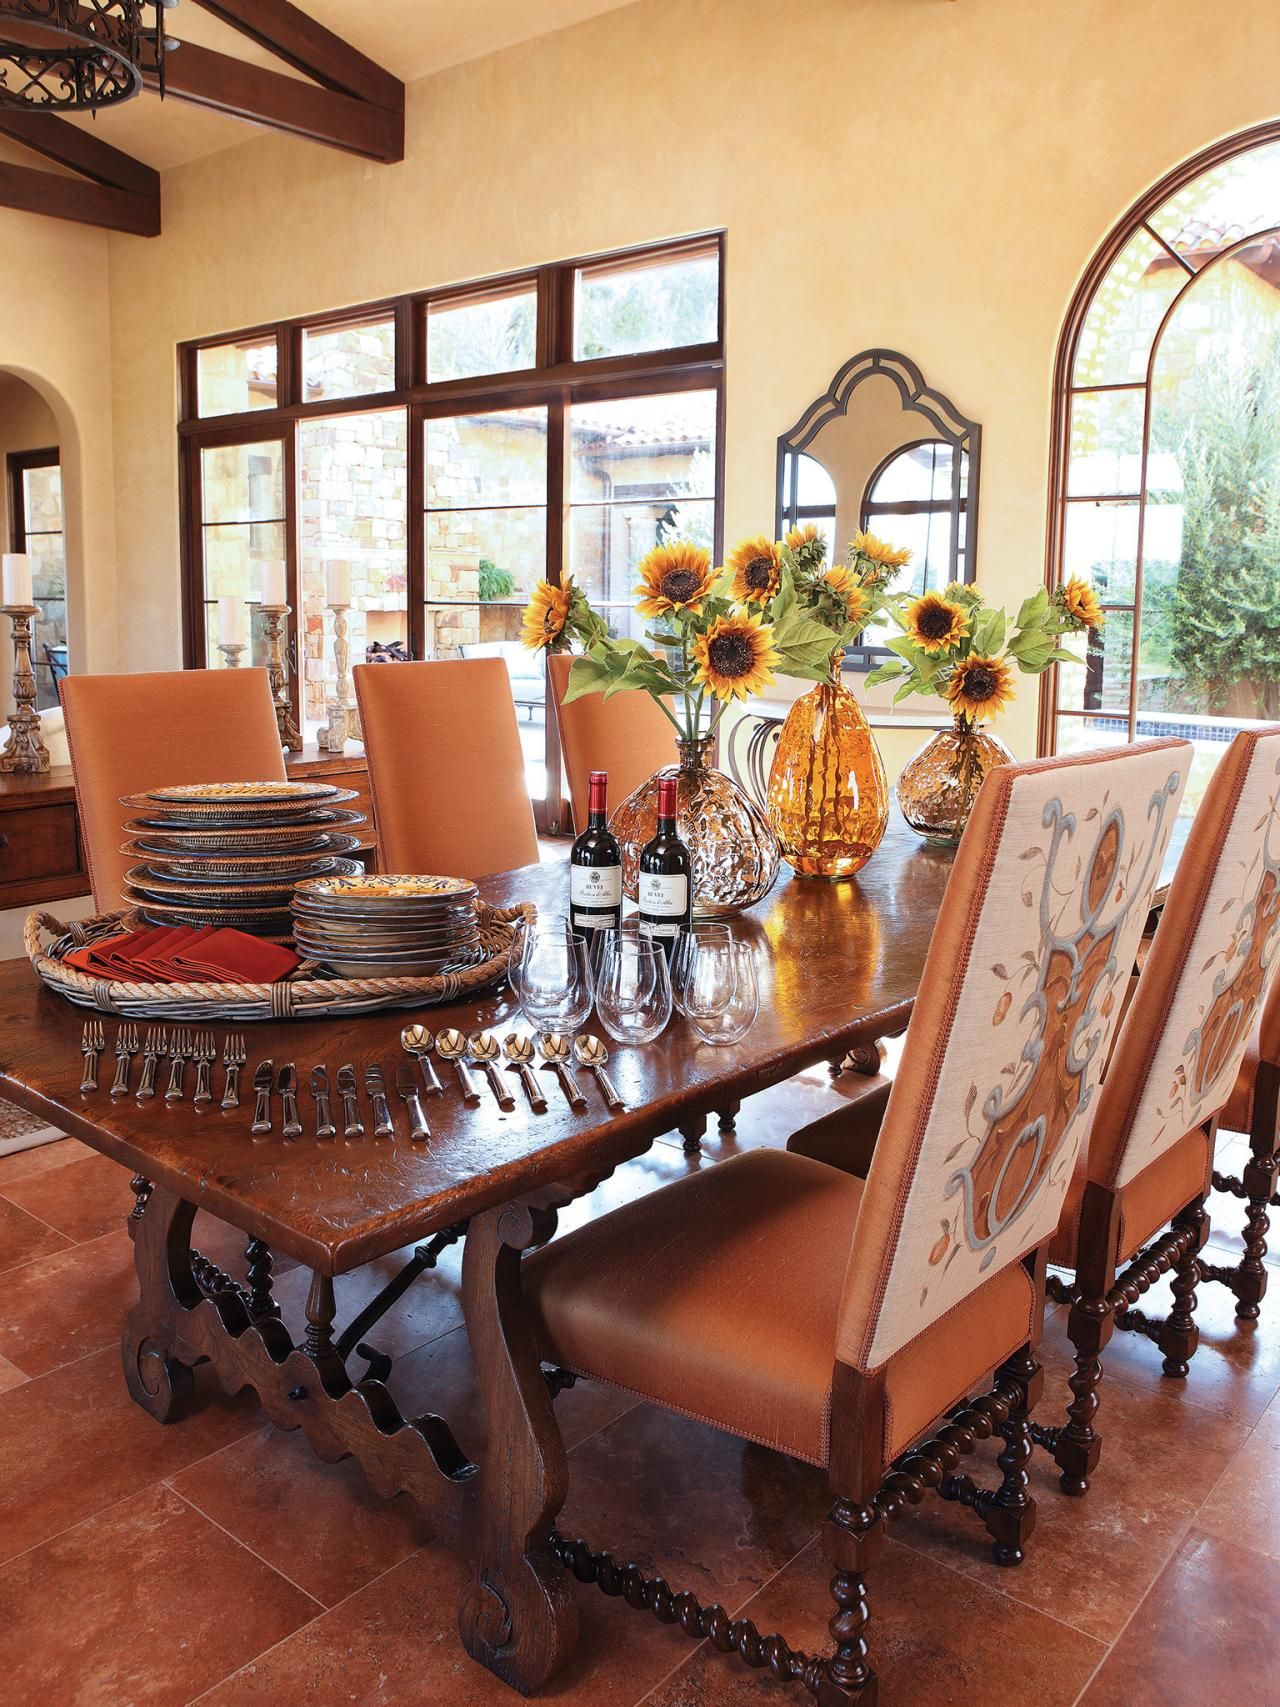 Elm Dining Table In Mediterranean Inspired Dining Room Country Dining Rooms French Country Dining Room Tuscan Dining Rooms